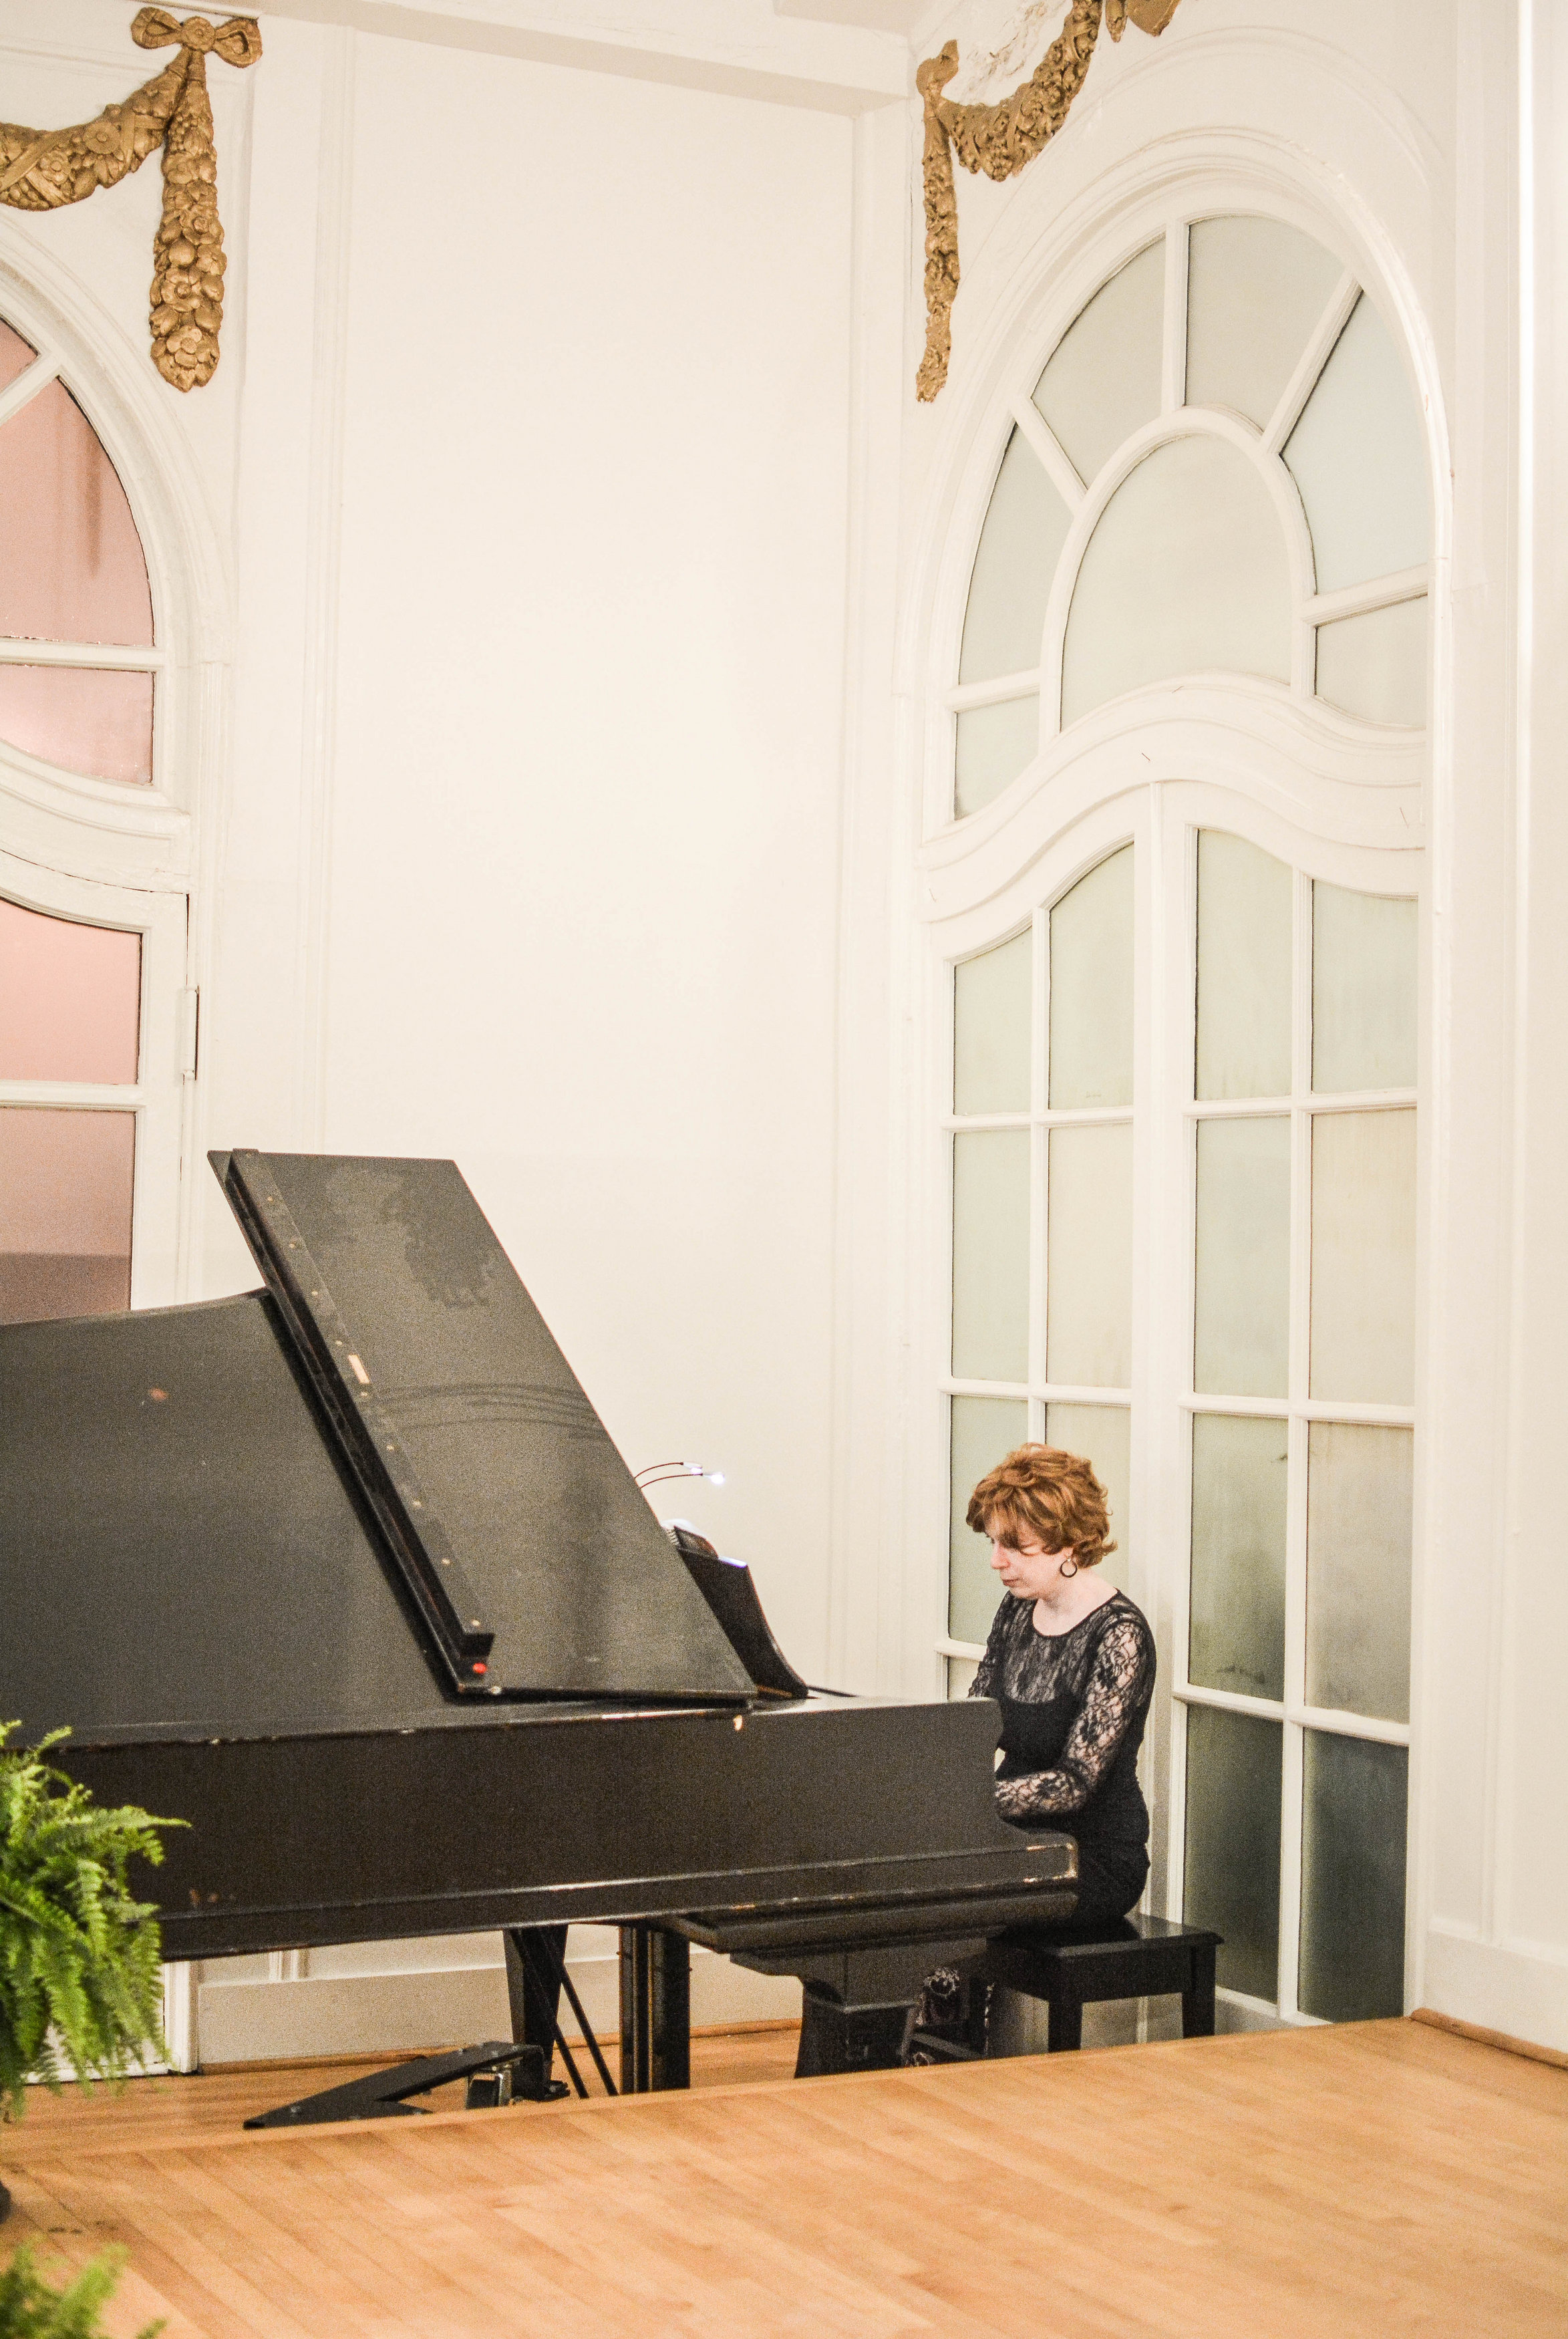 Atlanta Pianist Jennifer Blaske playing baby grand piano for wedding ceremony and cocktail hour at Wimbish House on Peachtree Street